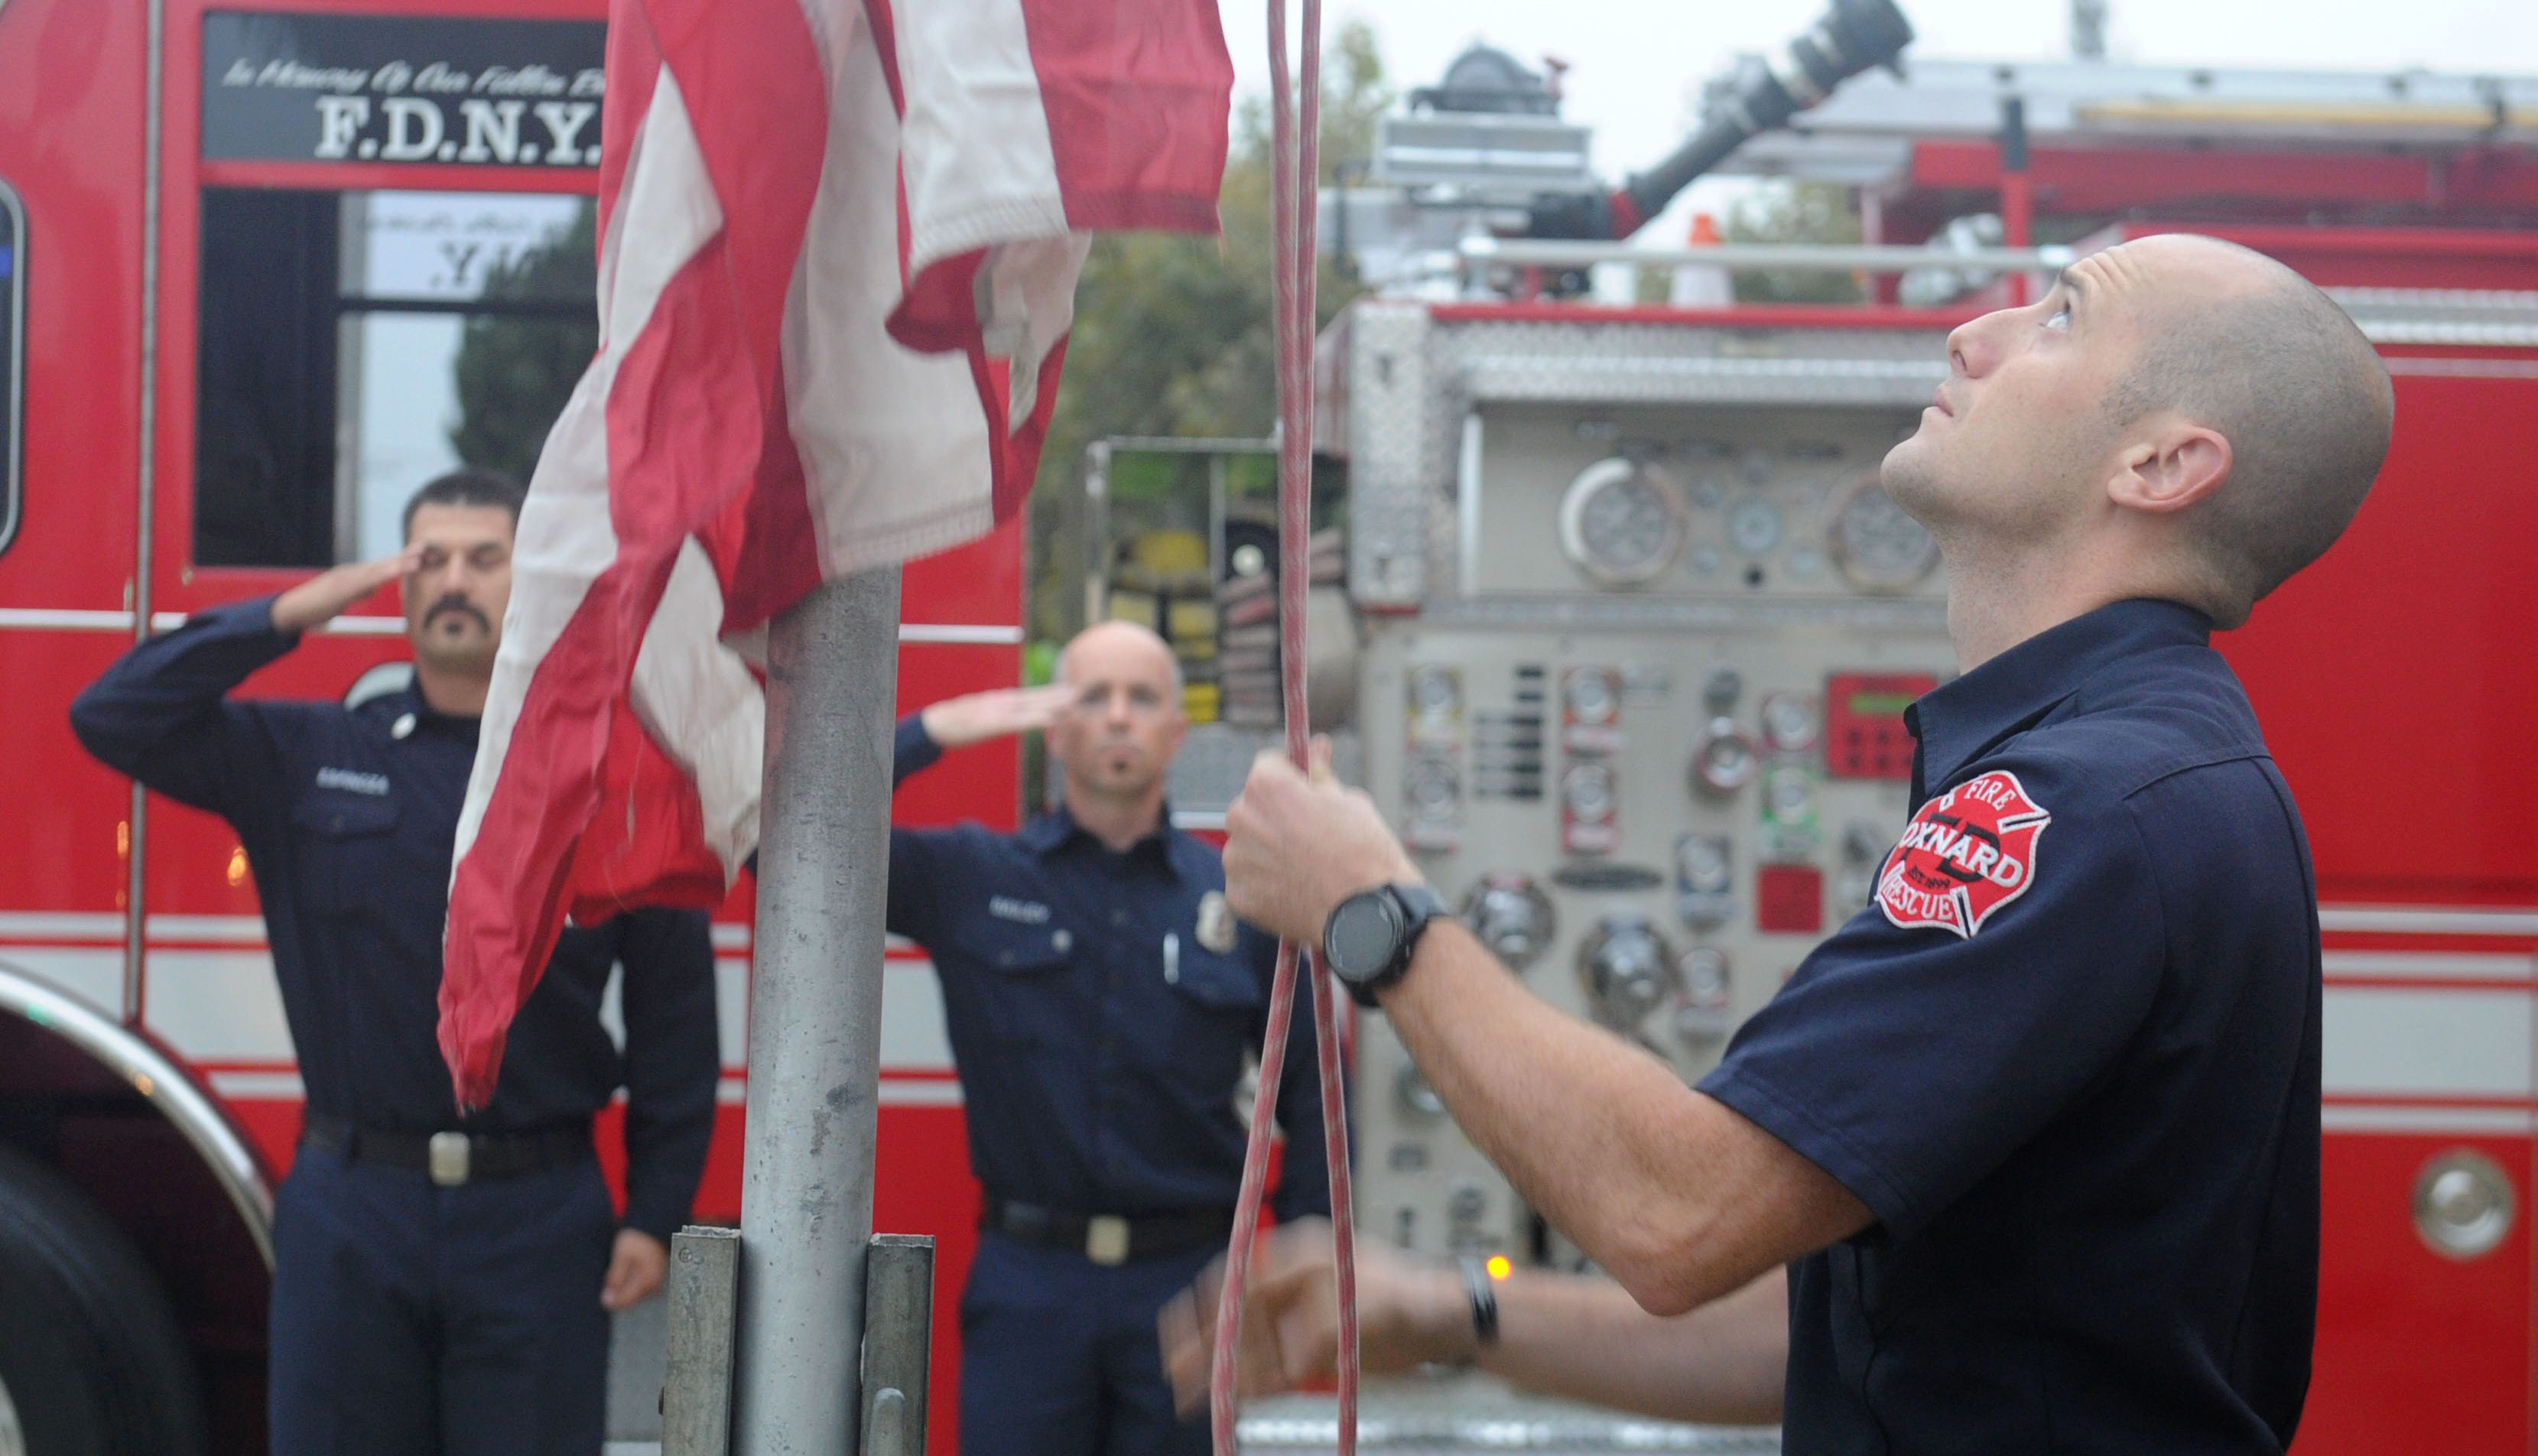 Fire agencies around Ventura County commemorated the 17th anniversary of the Sept. 11 terror attacks in New York, Washington, D.C., and Pennsylvania.